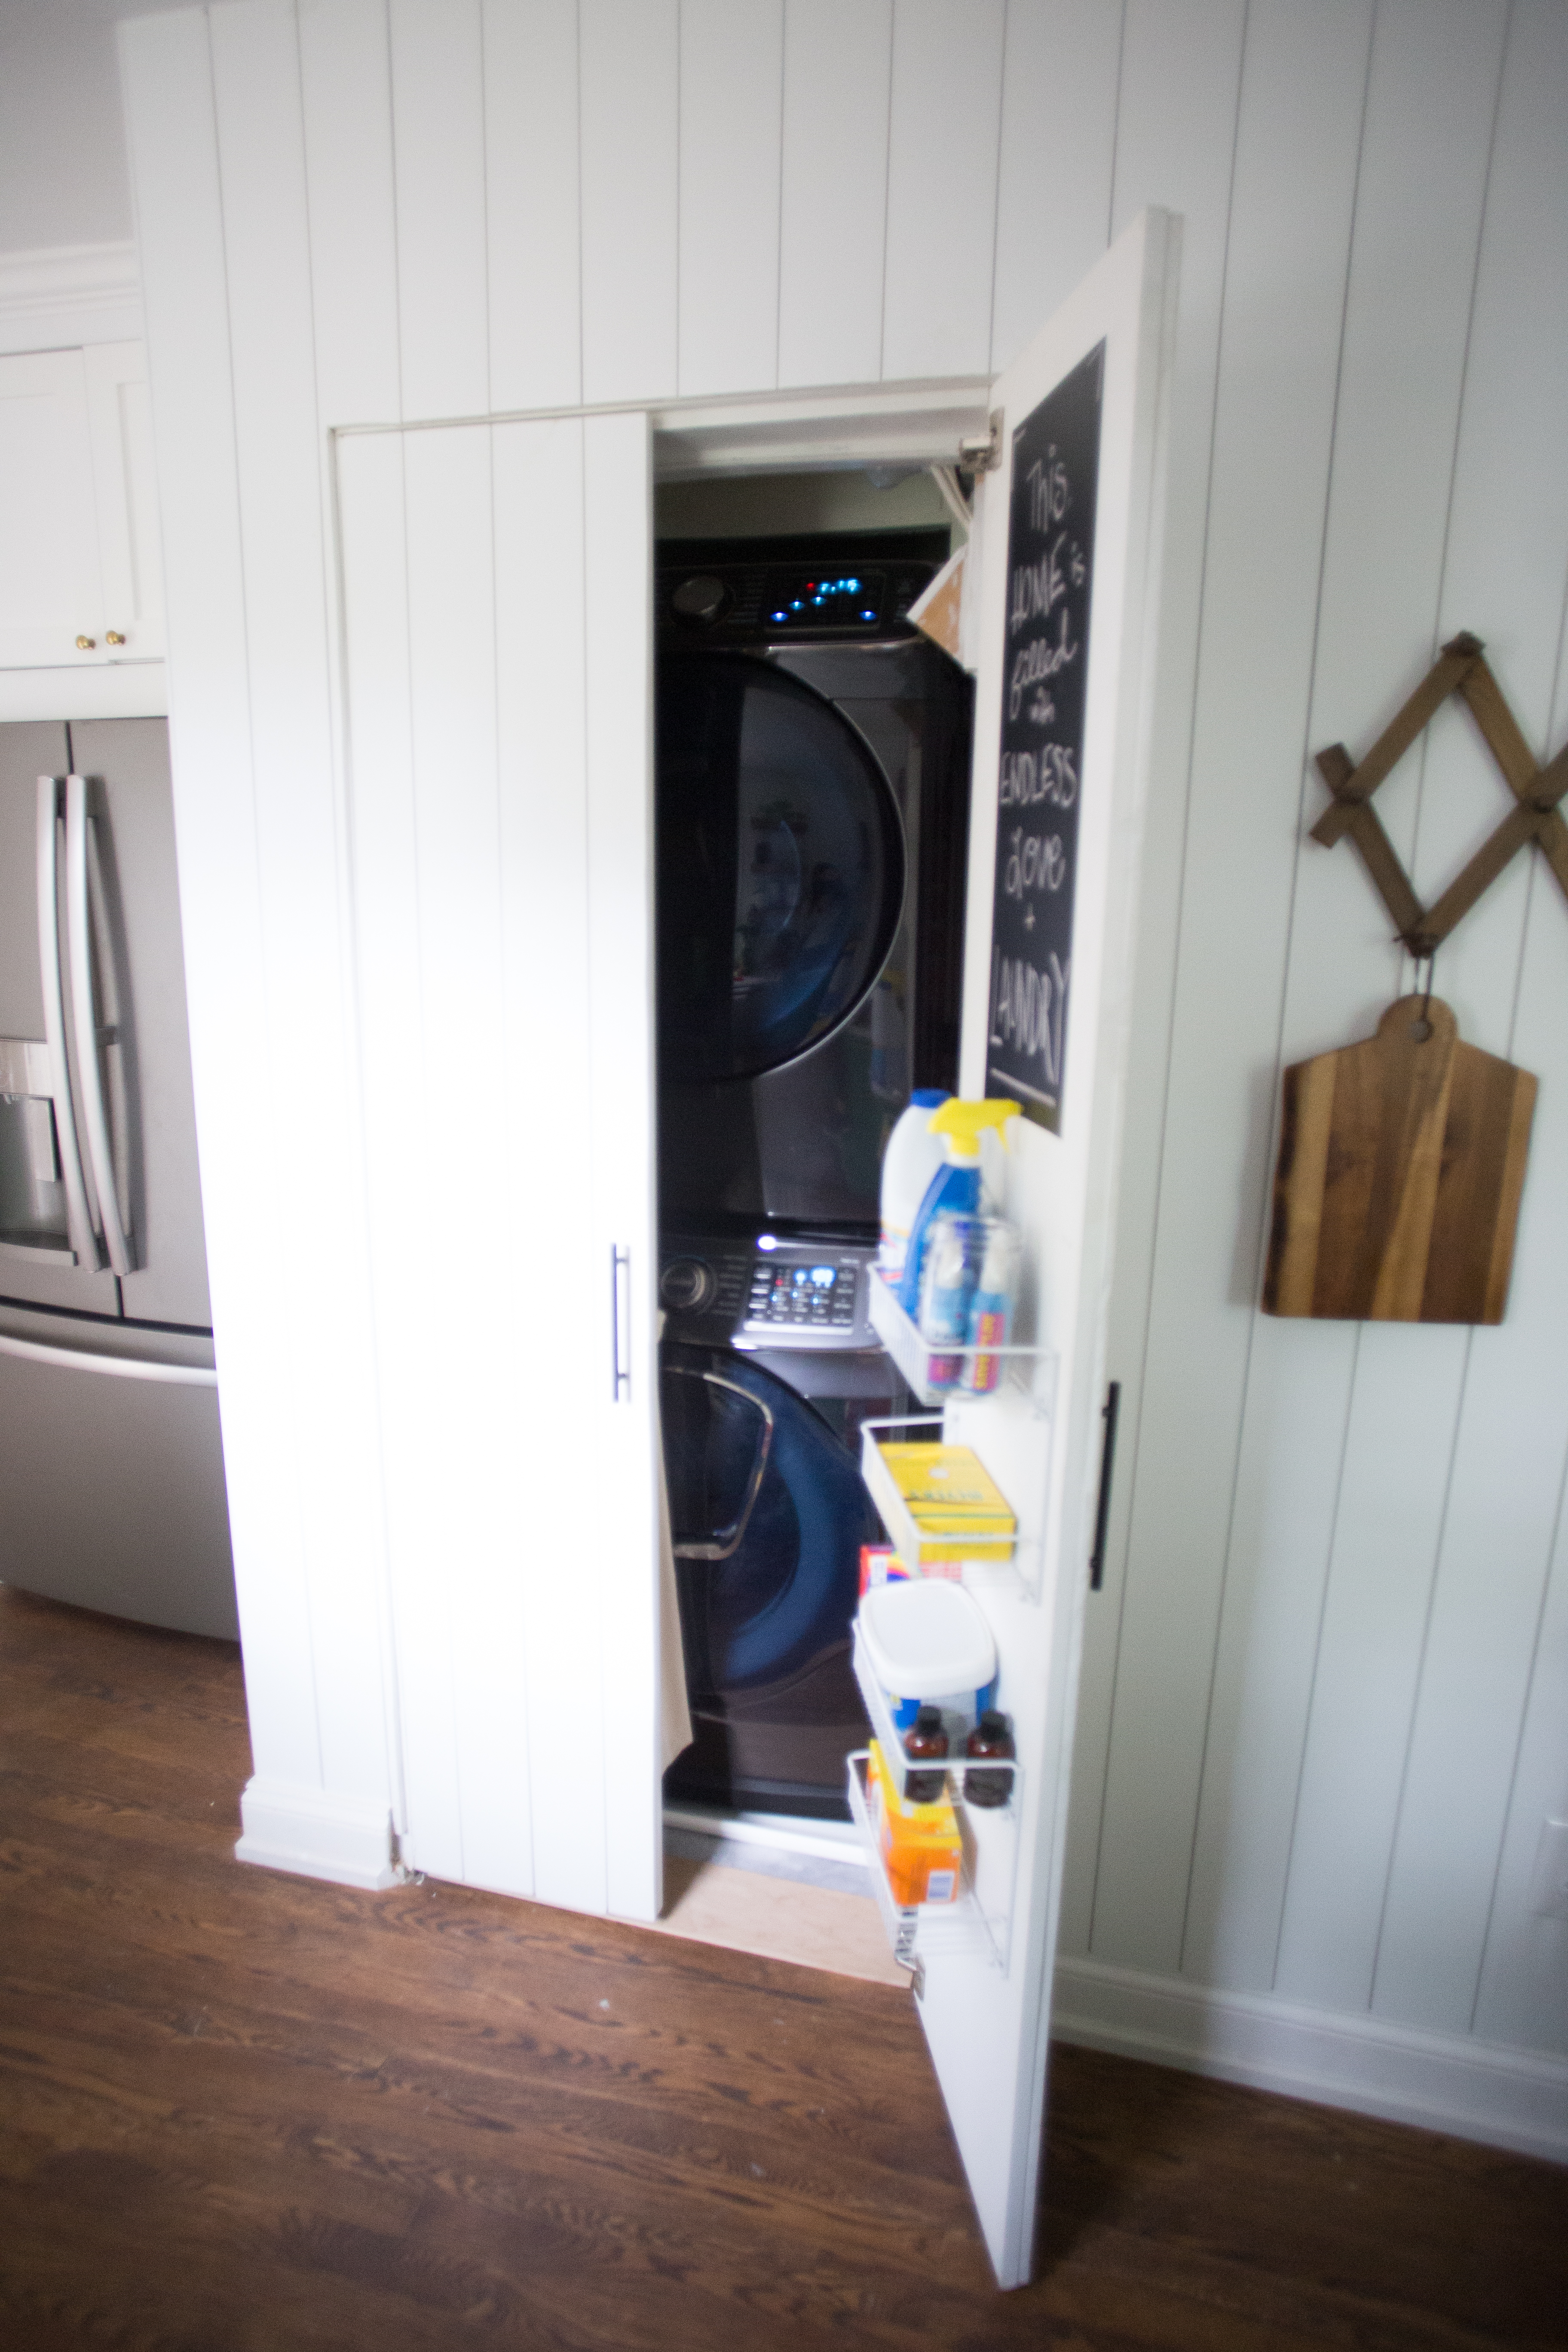 Maximize Space in a Small Laundry Closet - Live Free Creative Co